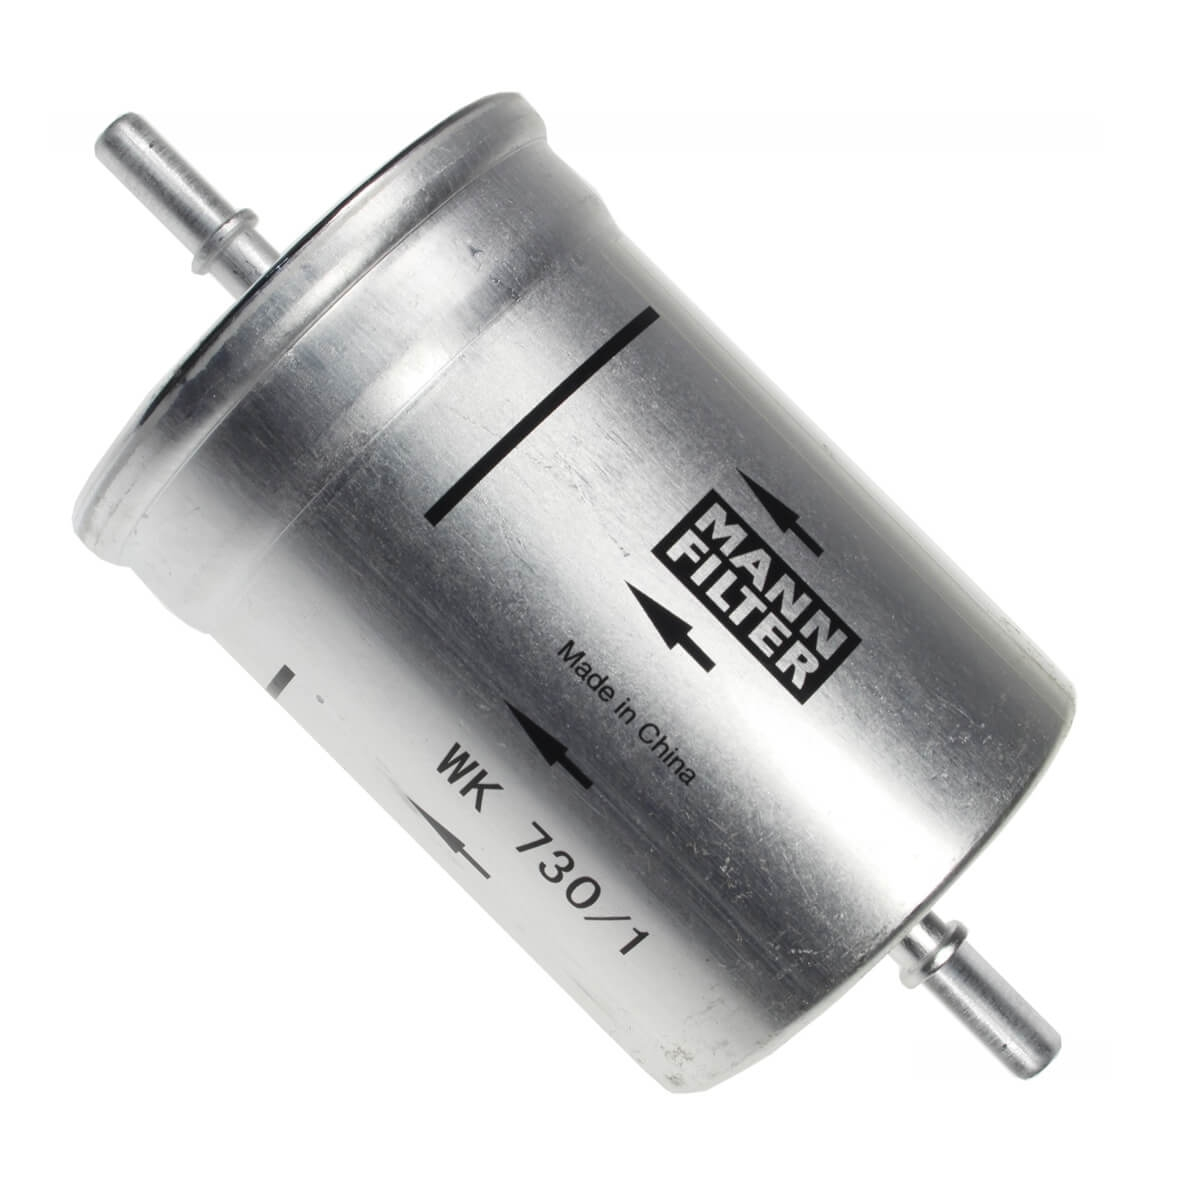 CHRYSLER VOYAGER IV Fuel Filters